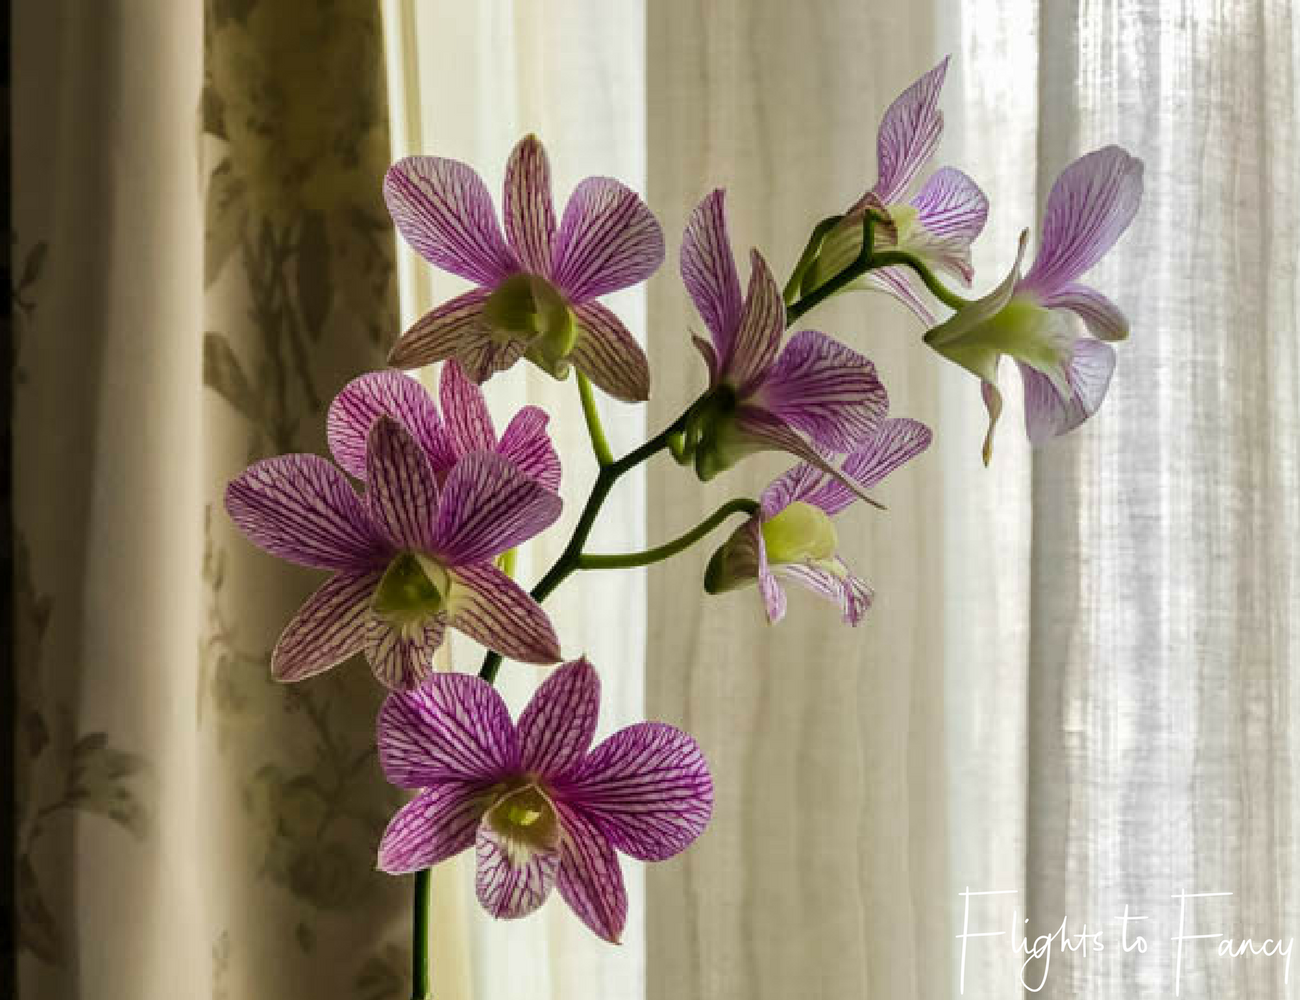 Flights To Fancy at Raffles Makati Manila - When you get fresh orchids you know you are in one of the top hotels in Makati